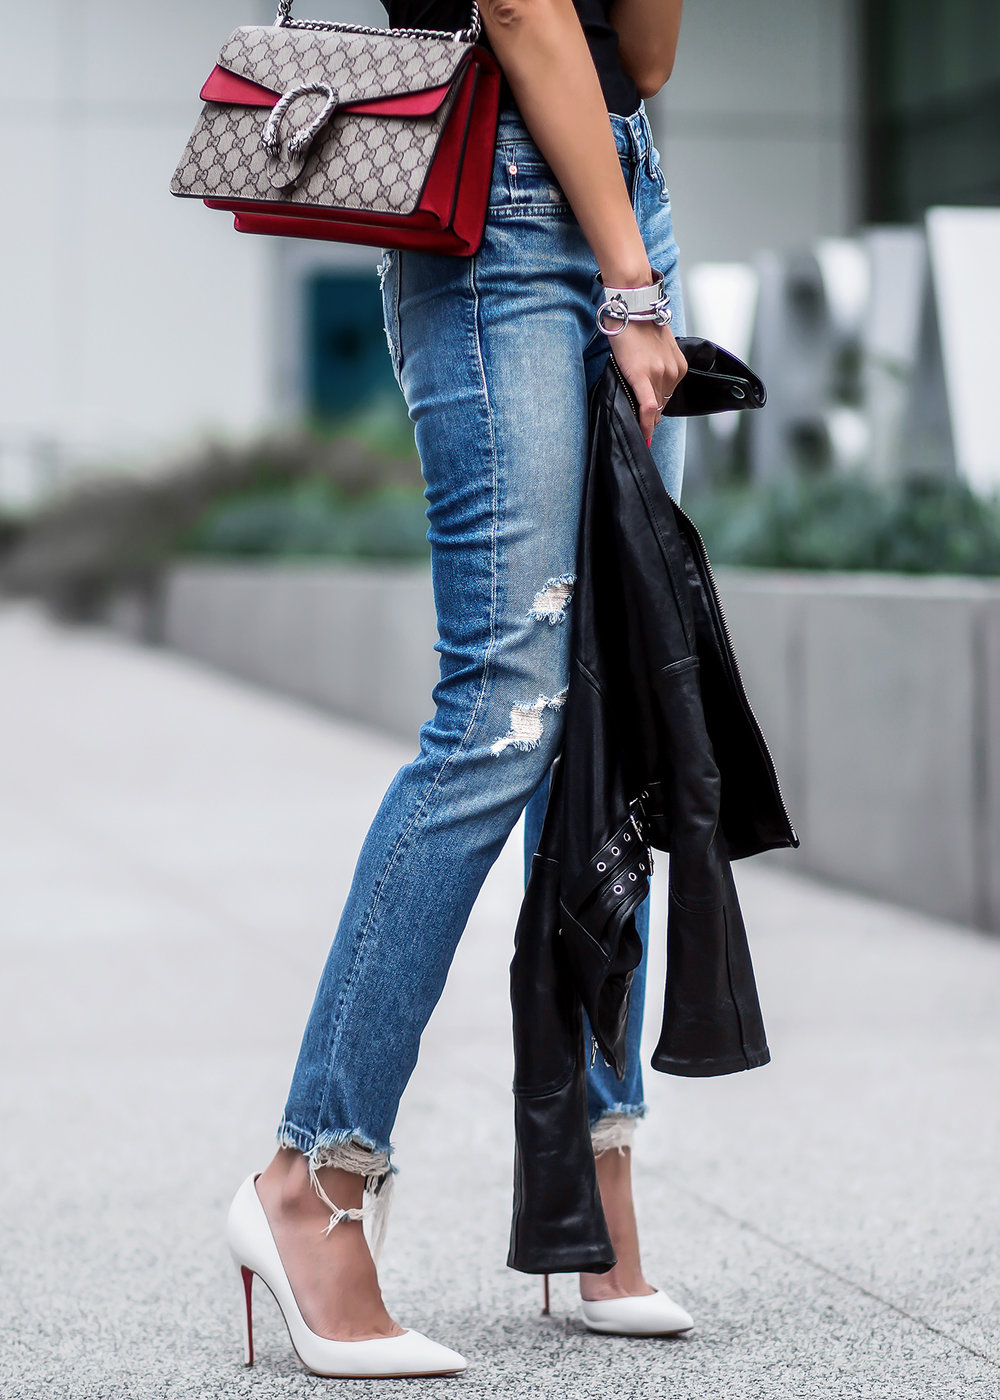 Mother_Denim_Ripped_Jeans_Gucci_Dionysus_Bag_White_Christian_Louboutin_Pumps_Black_Leather_Biker_Jacket.jpg